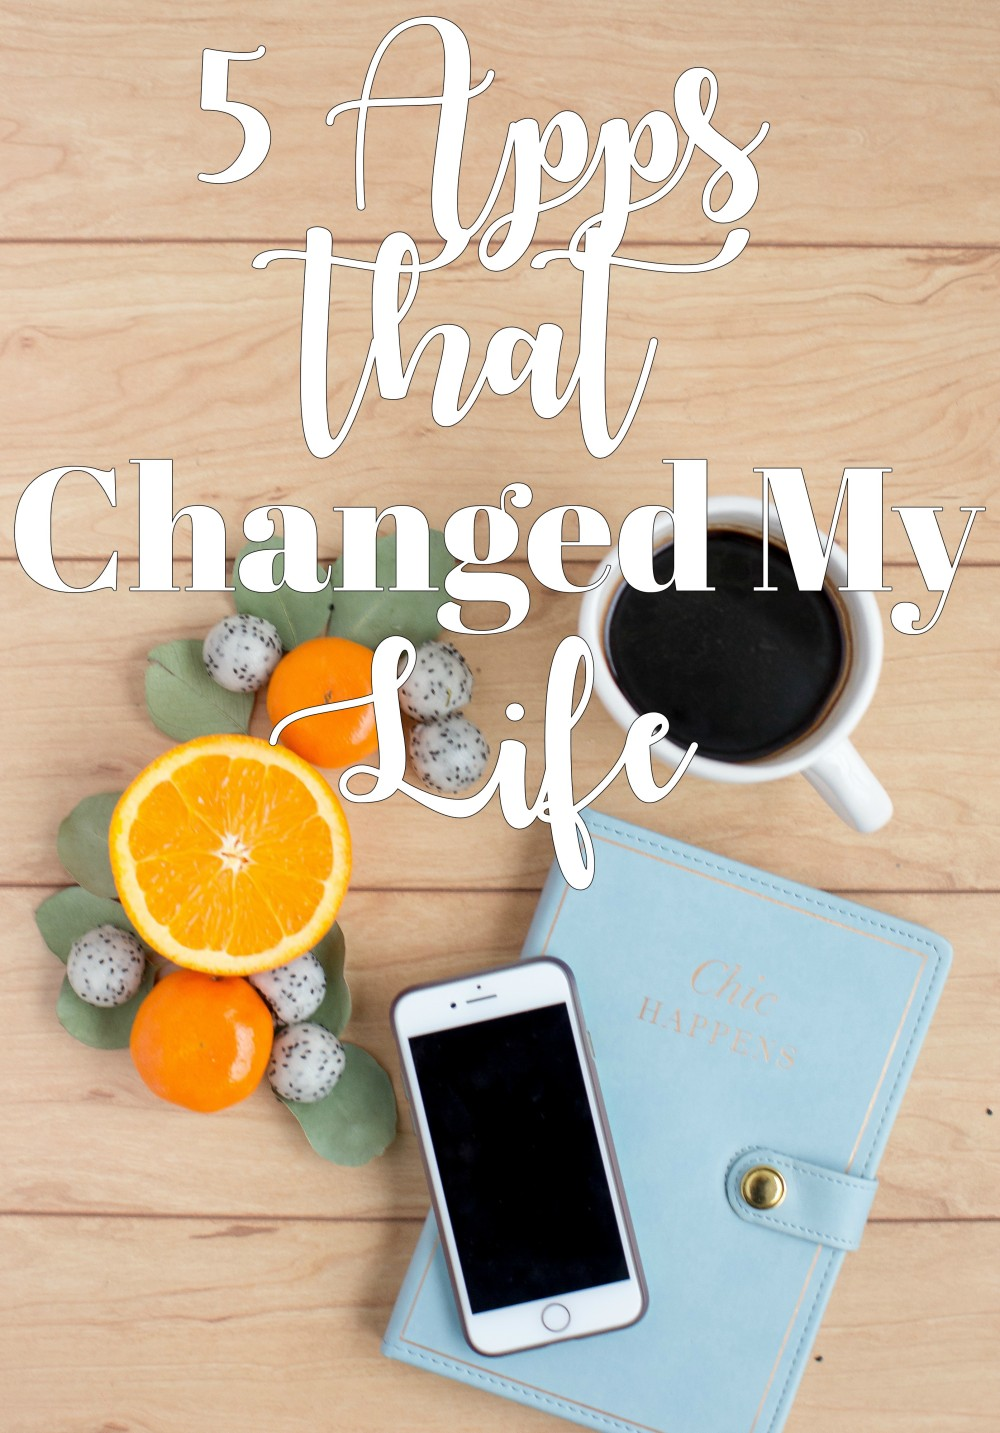 5 apps that changed my life